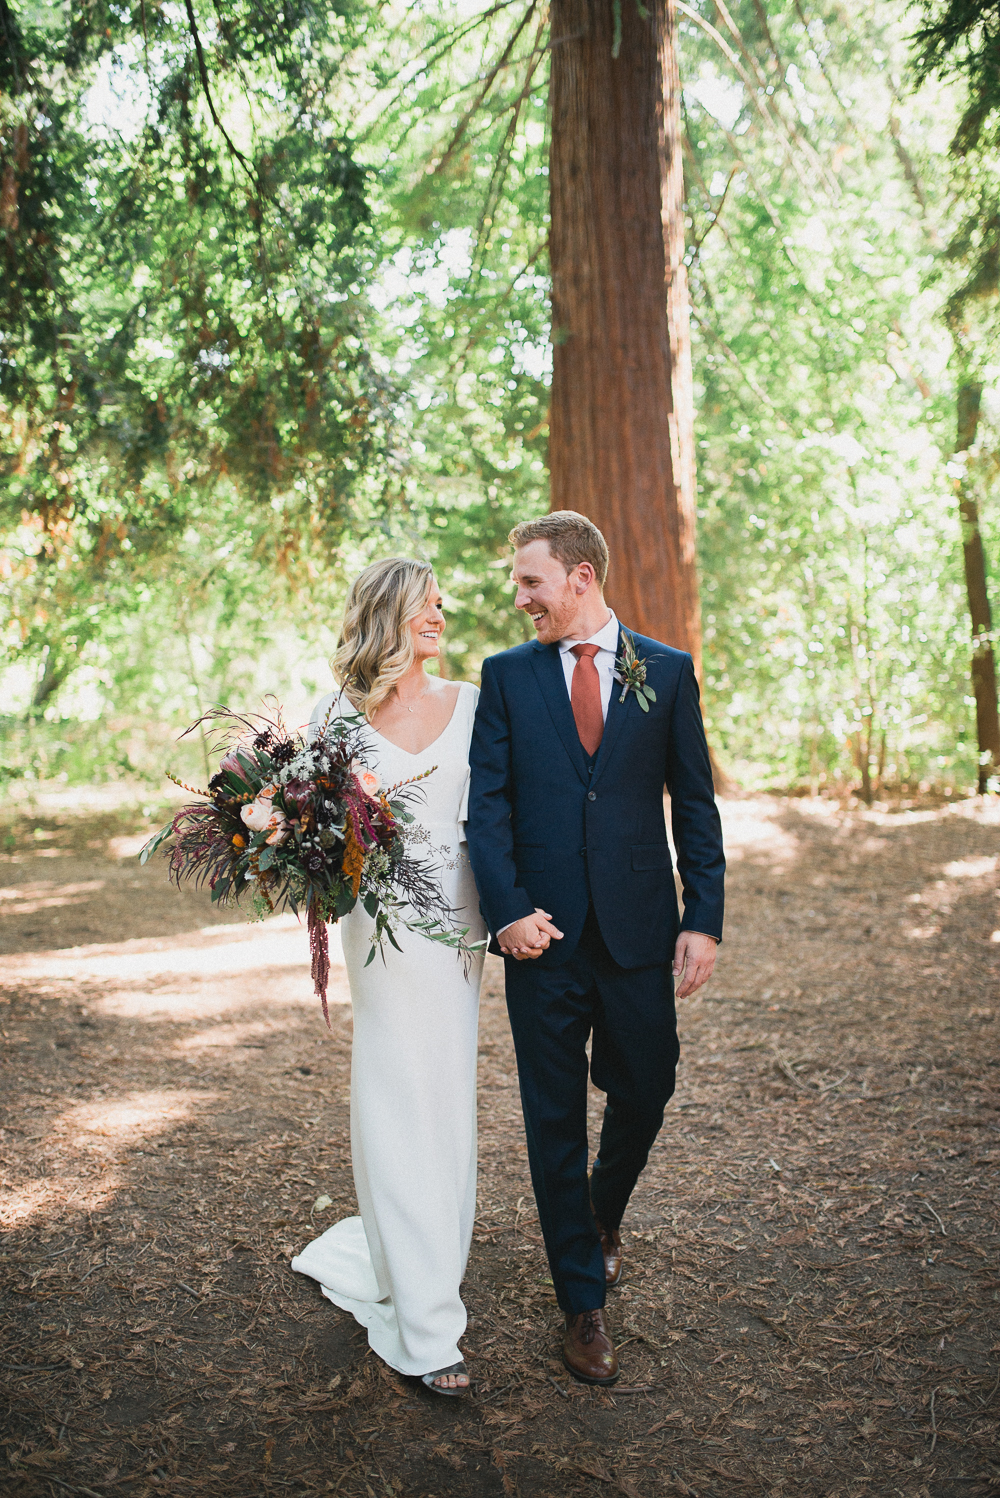 Heather Selzer Wedding & Lifestyle Photographer - For Couples - Northern California - Gale Vineyard Wedding